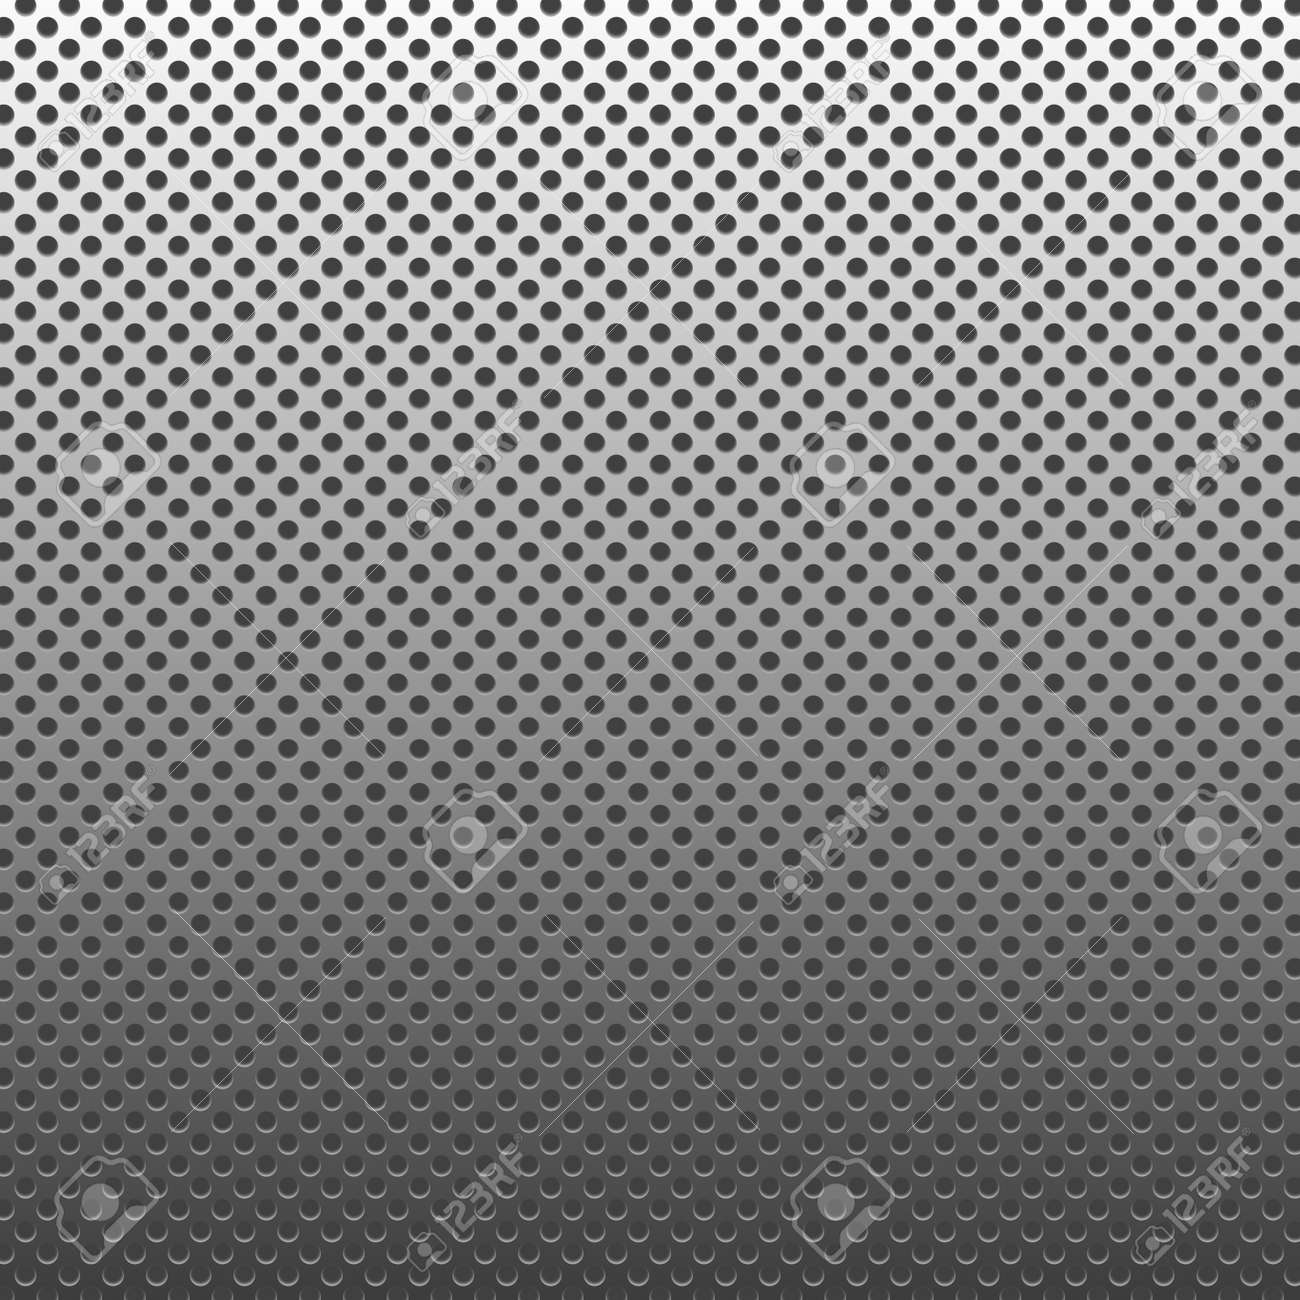 Circle texture metal abstract background with dots Stock Photo - 10224724